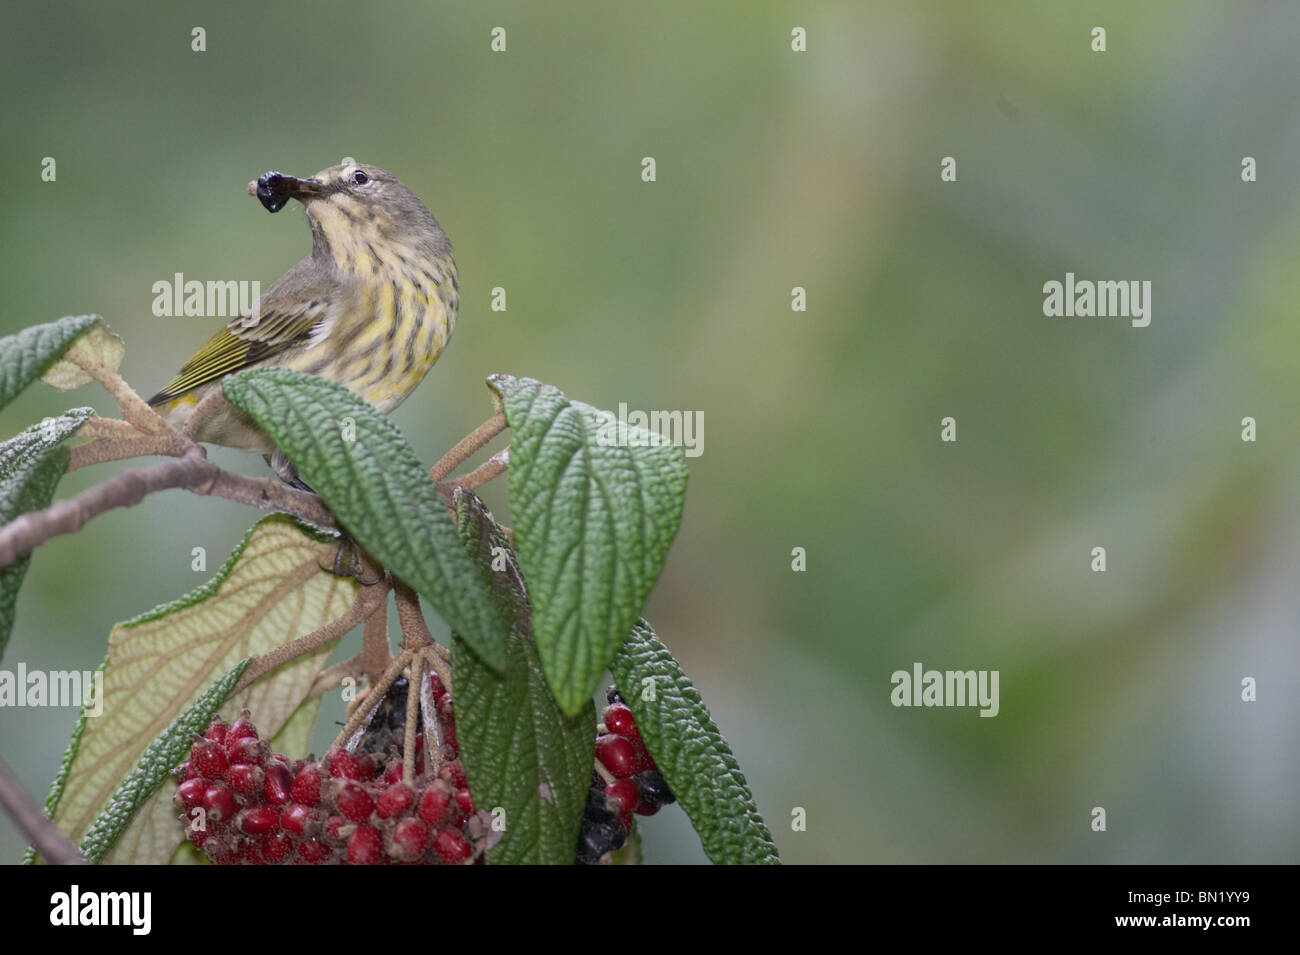 Cape May Warbler in non-breeding plumage eating a Leatherleaf Virburnum berry - Stock Image